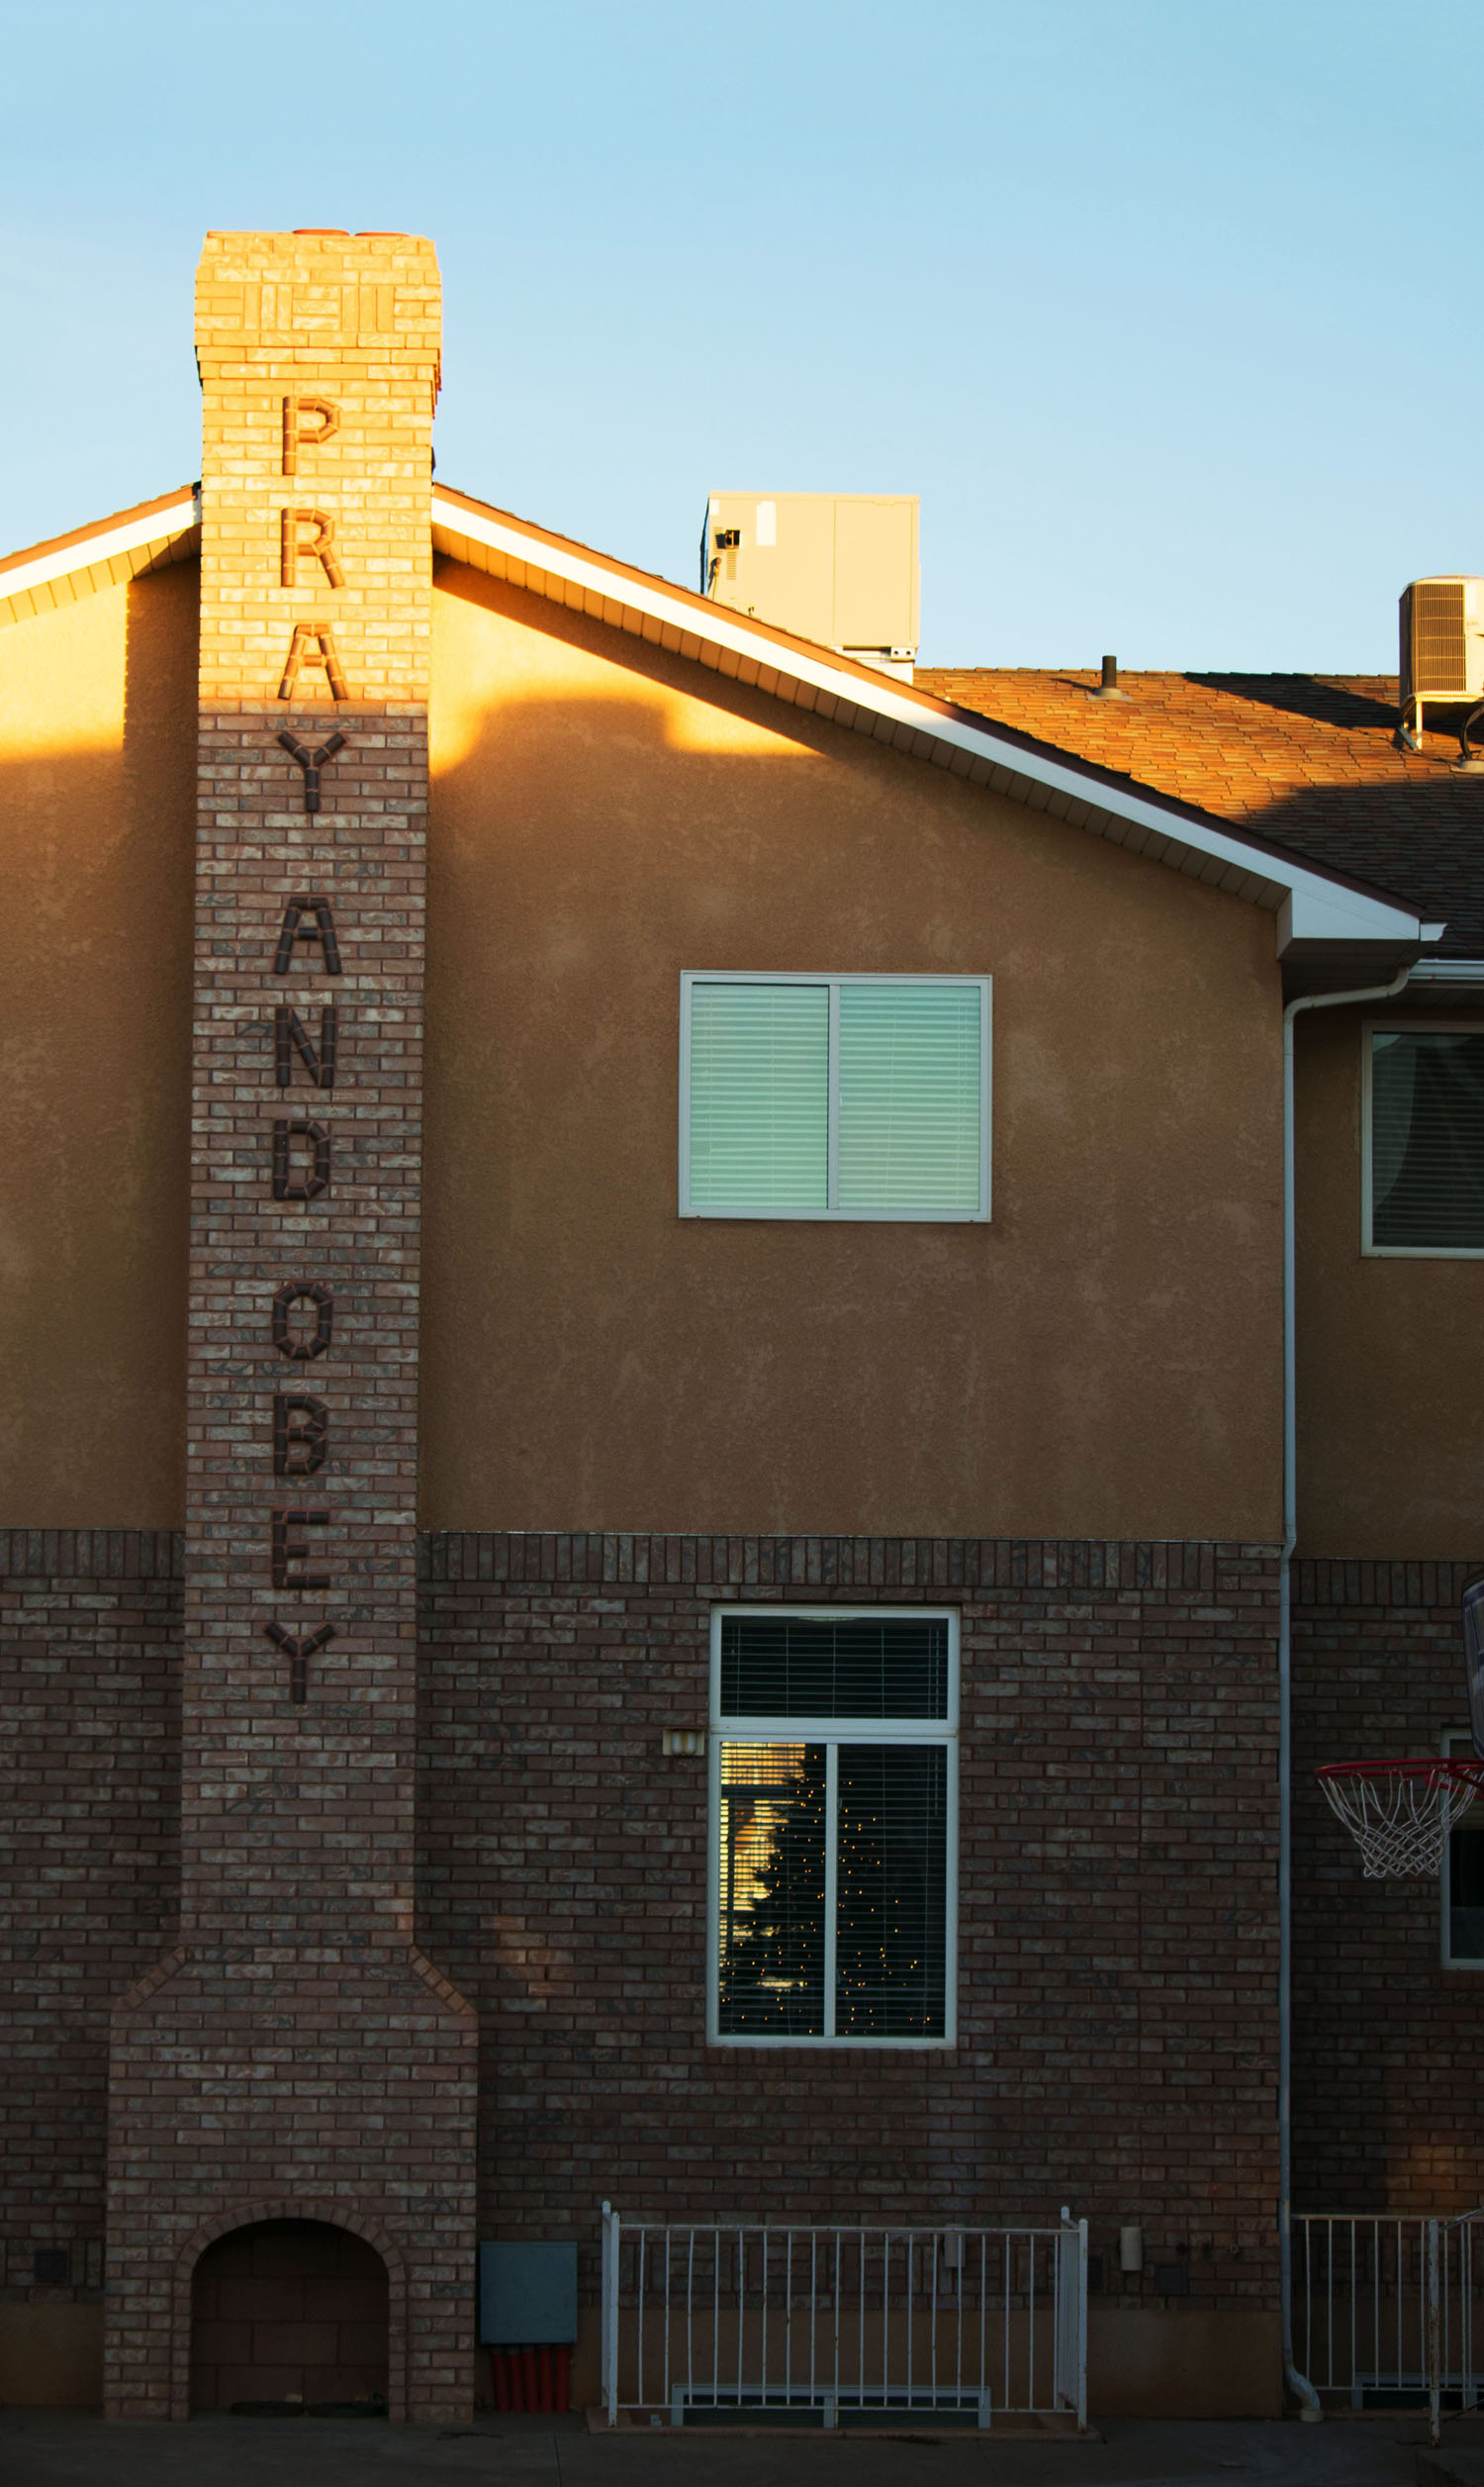 Warren Jeffs' frequent mantra on the chimney outside his old house. Dream Center's Christmas tree is visible through the window.